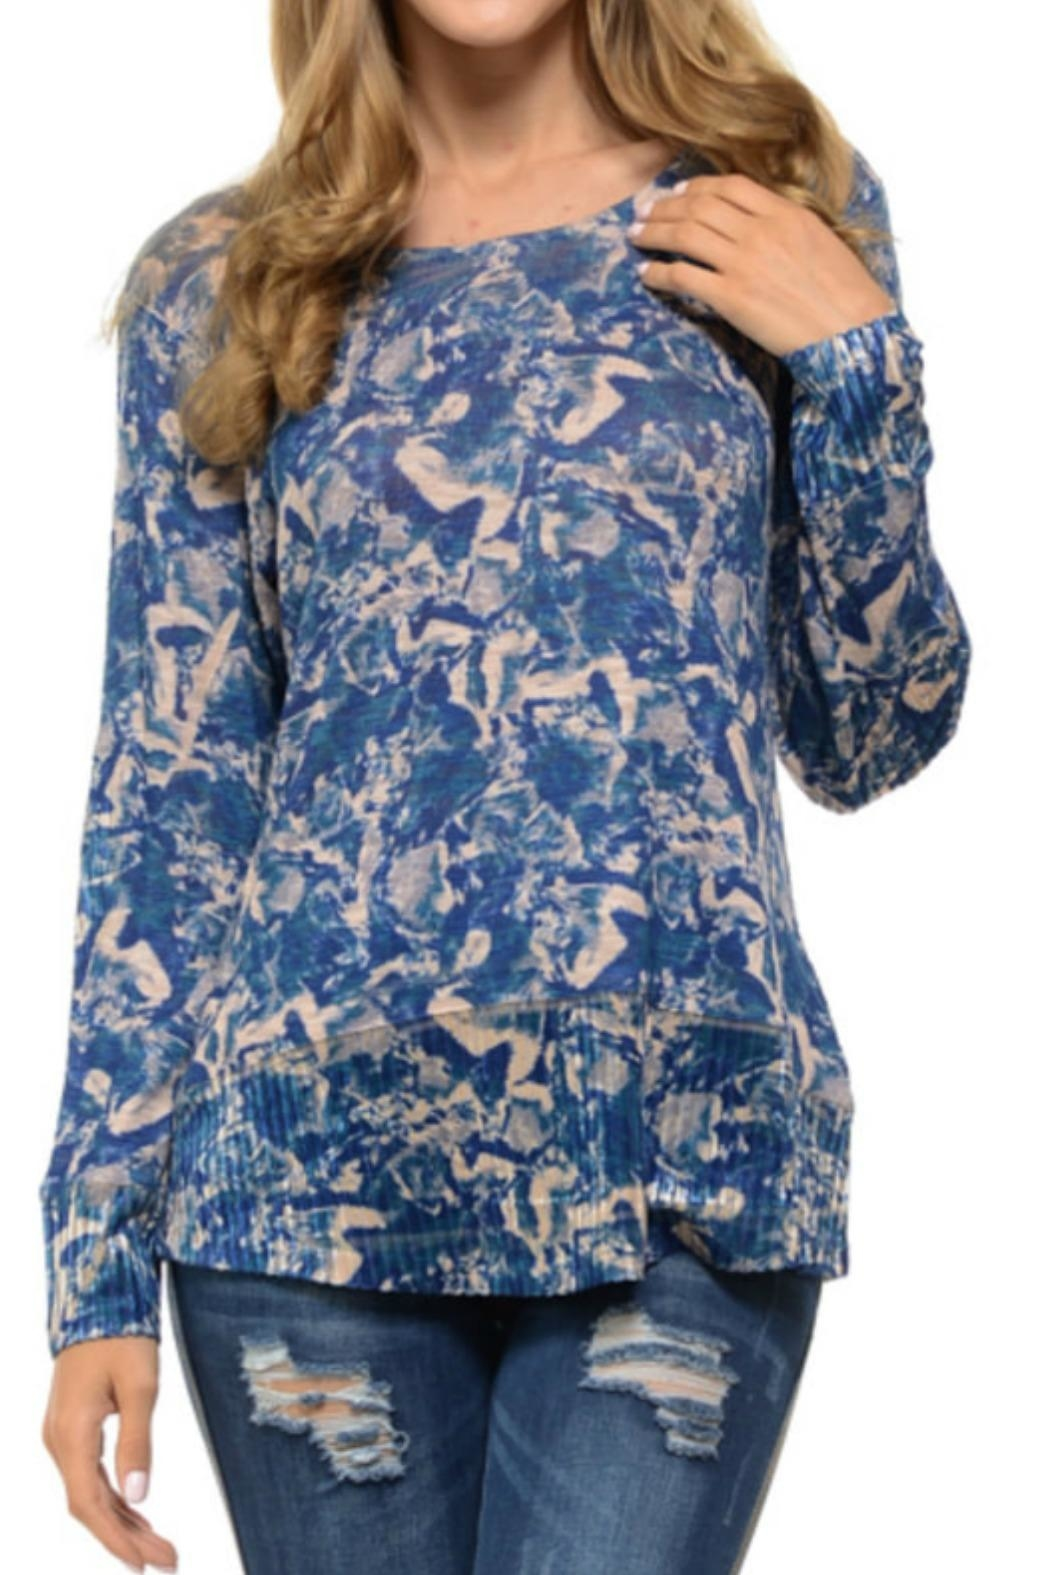 Cubism Abstract Blue Sweater - Main Image